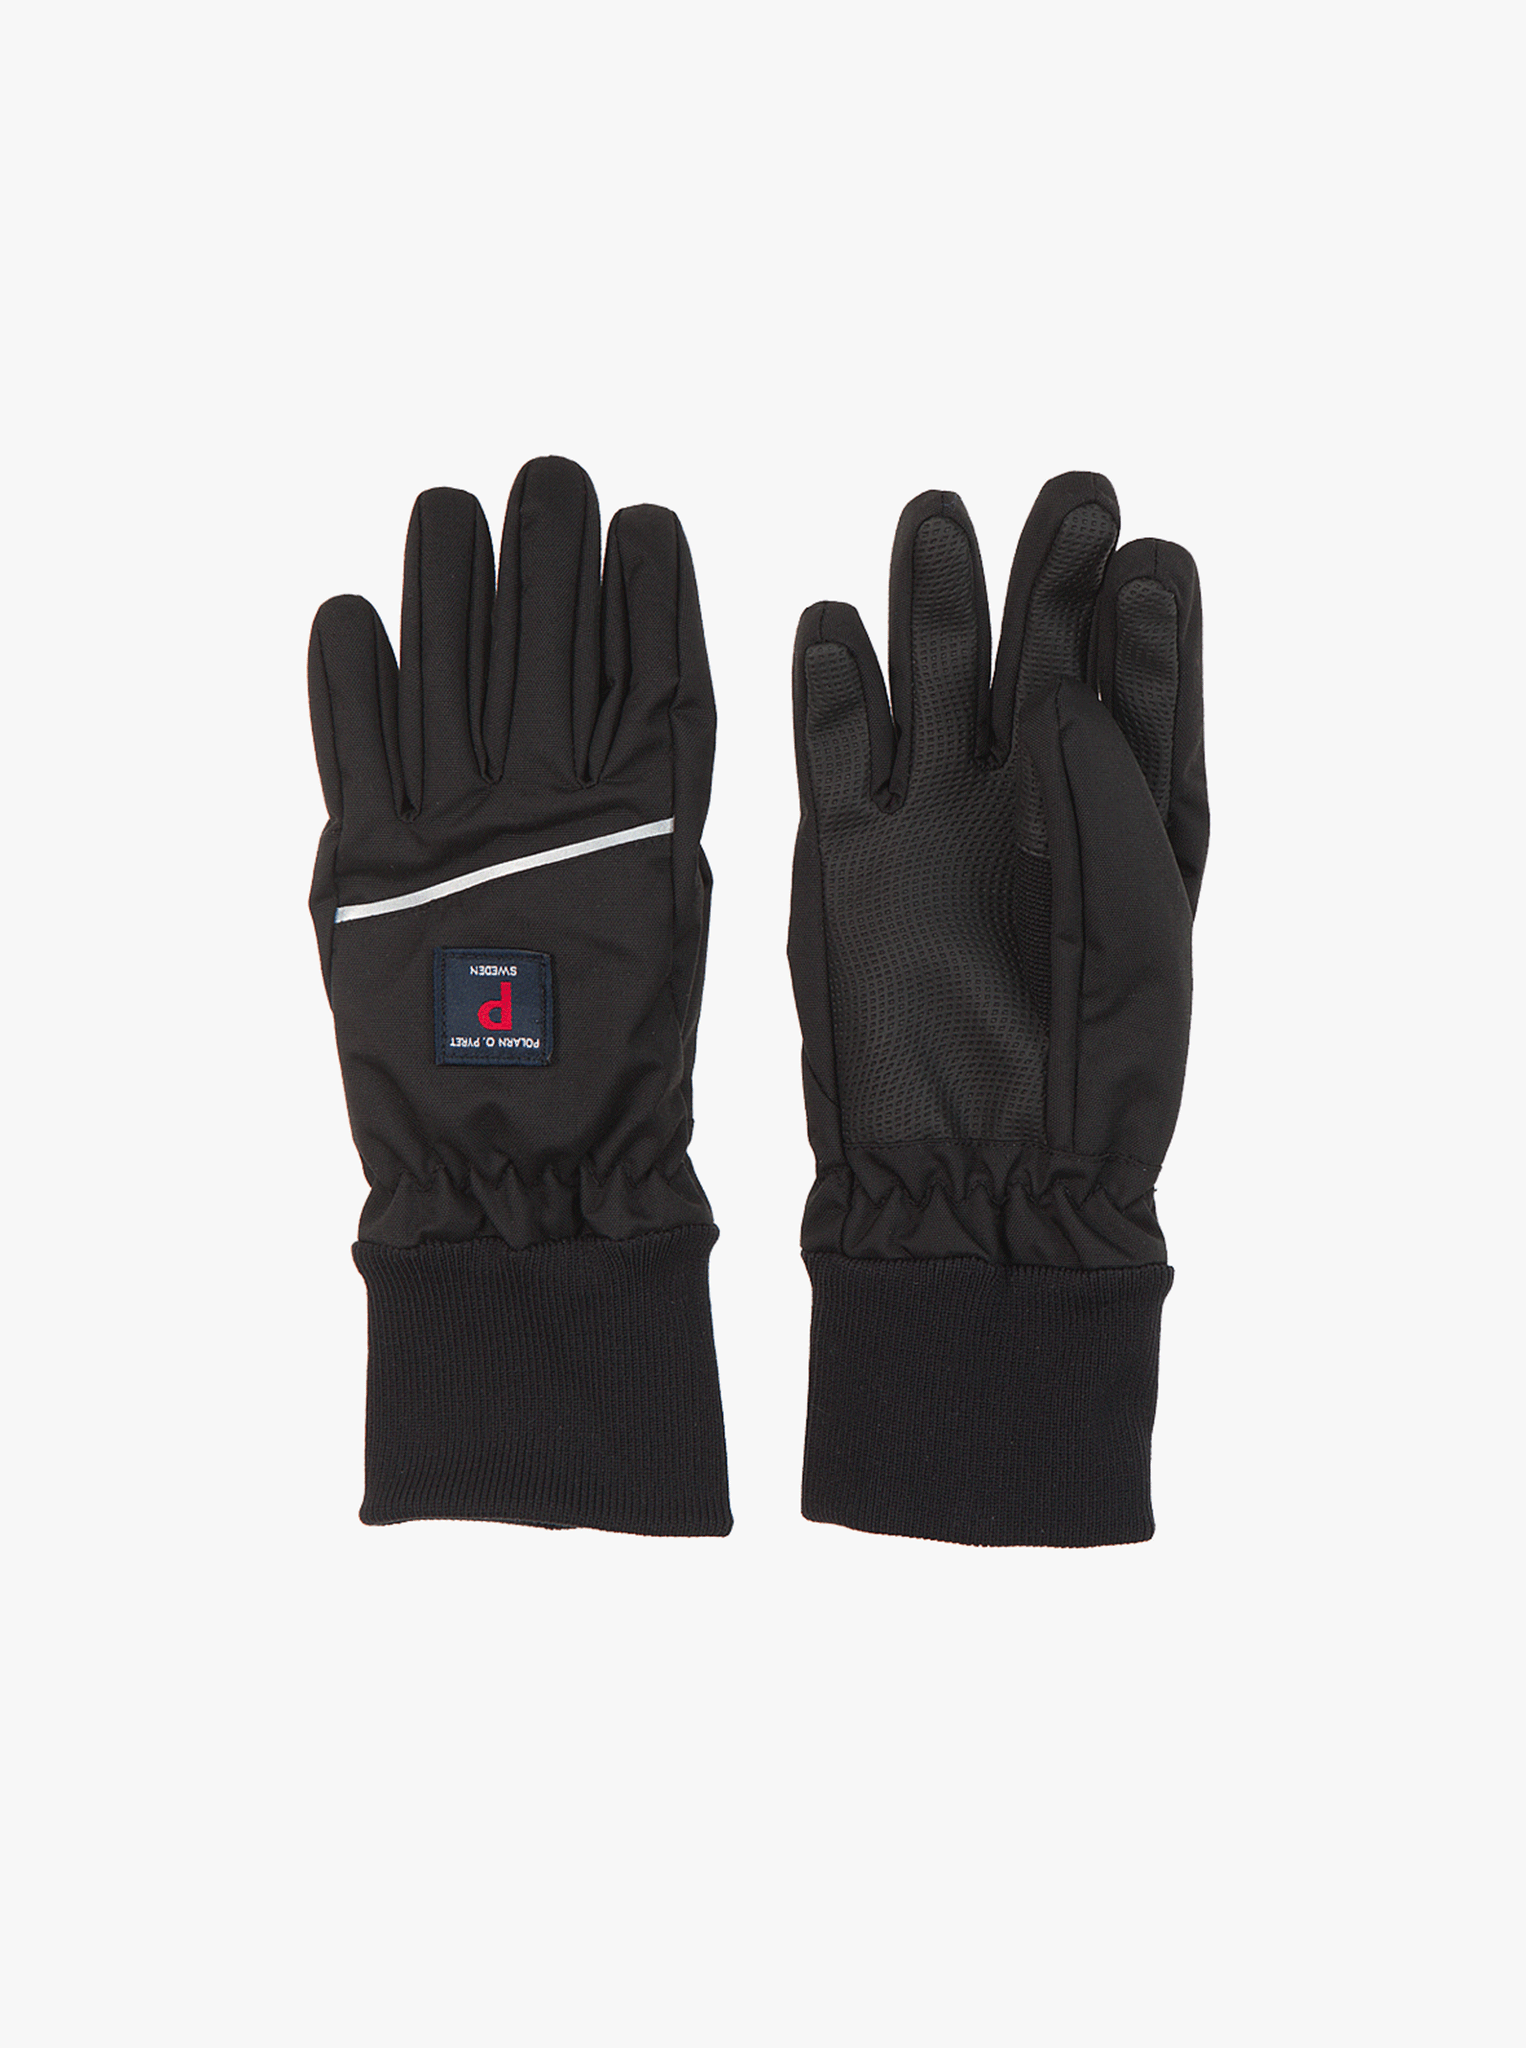 Kids Waterproof Gloves,Black,2-12years